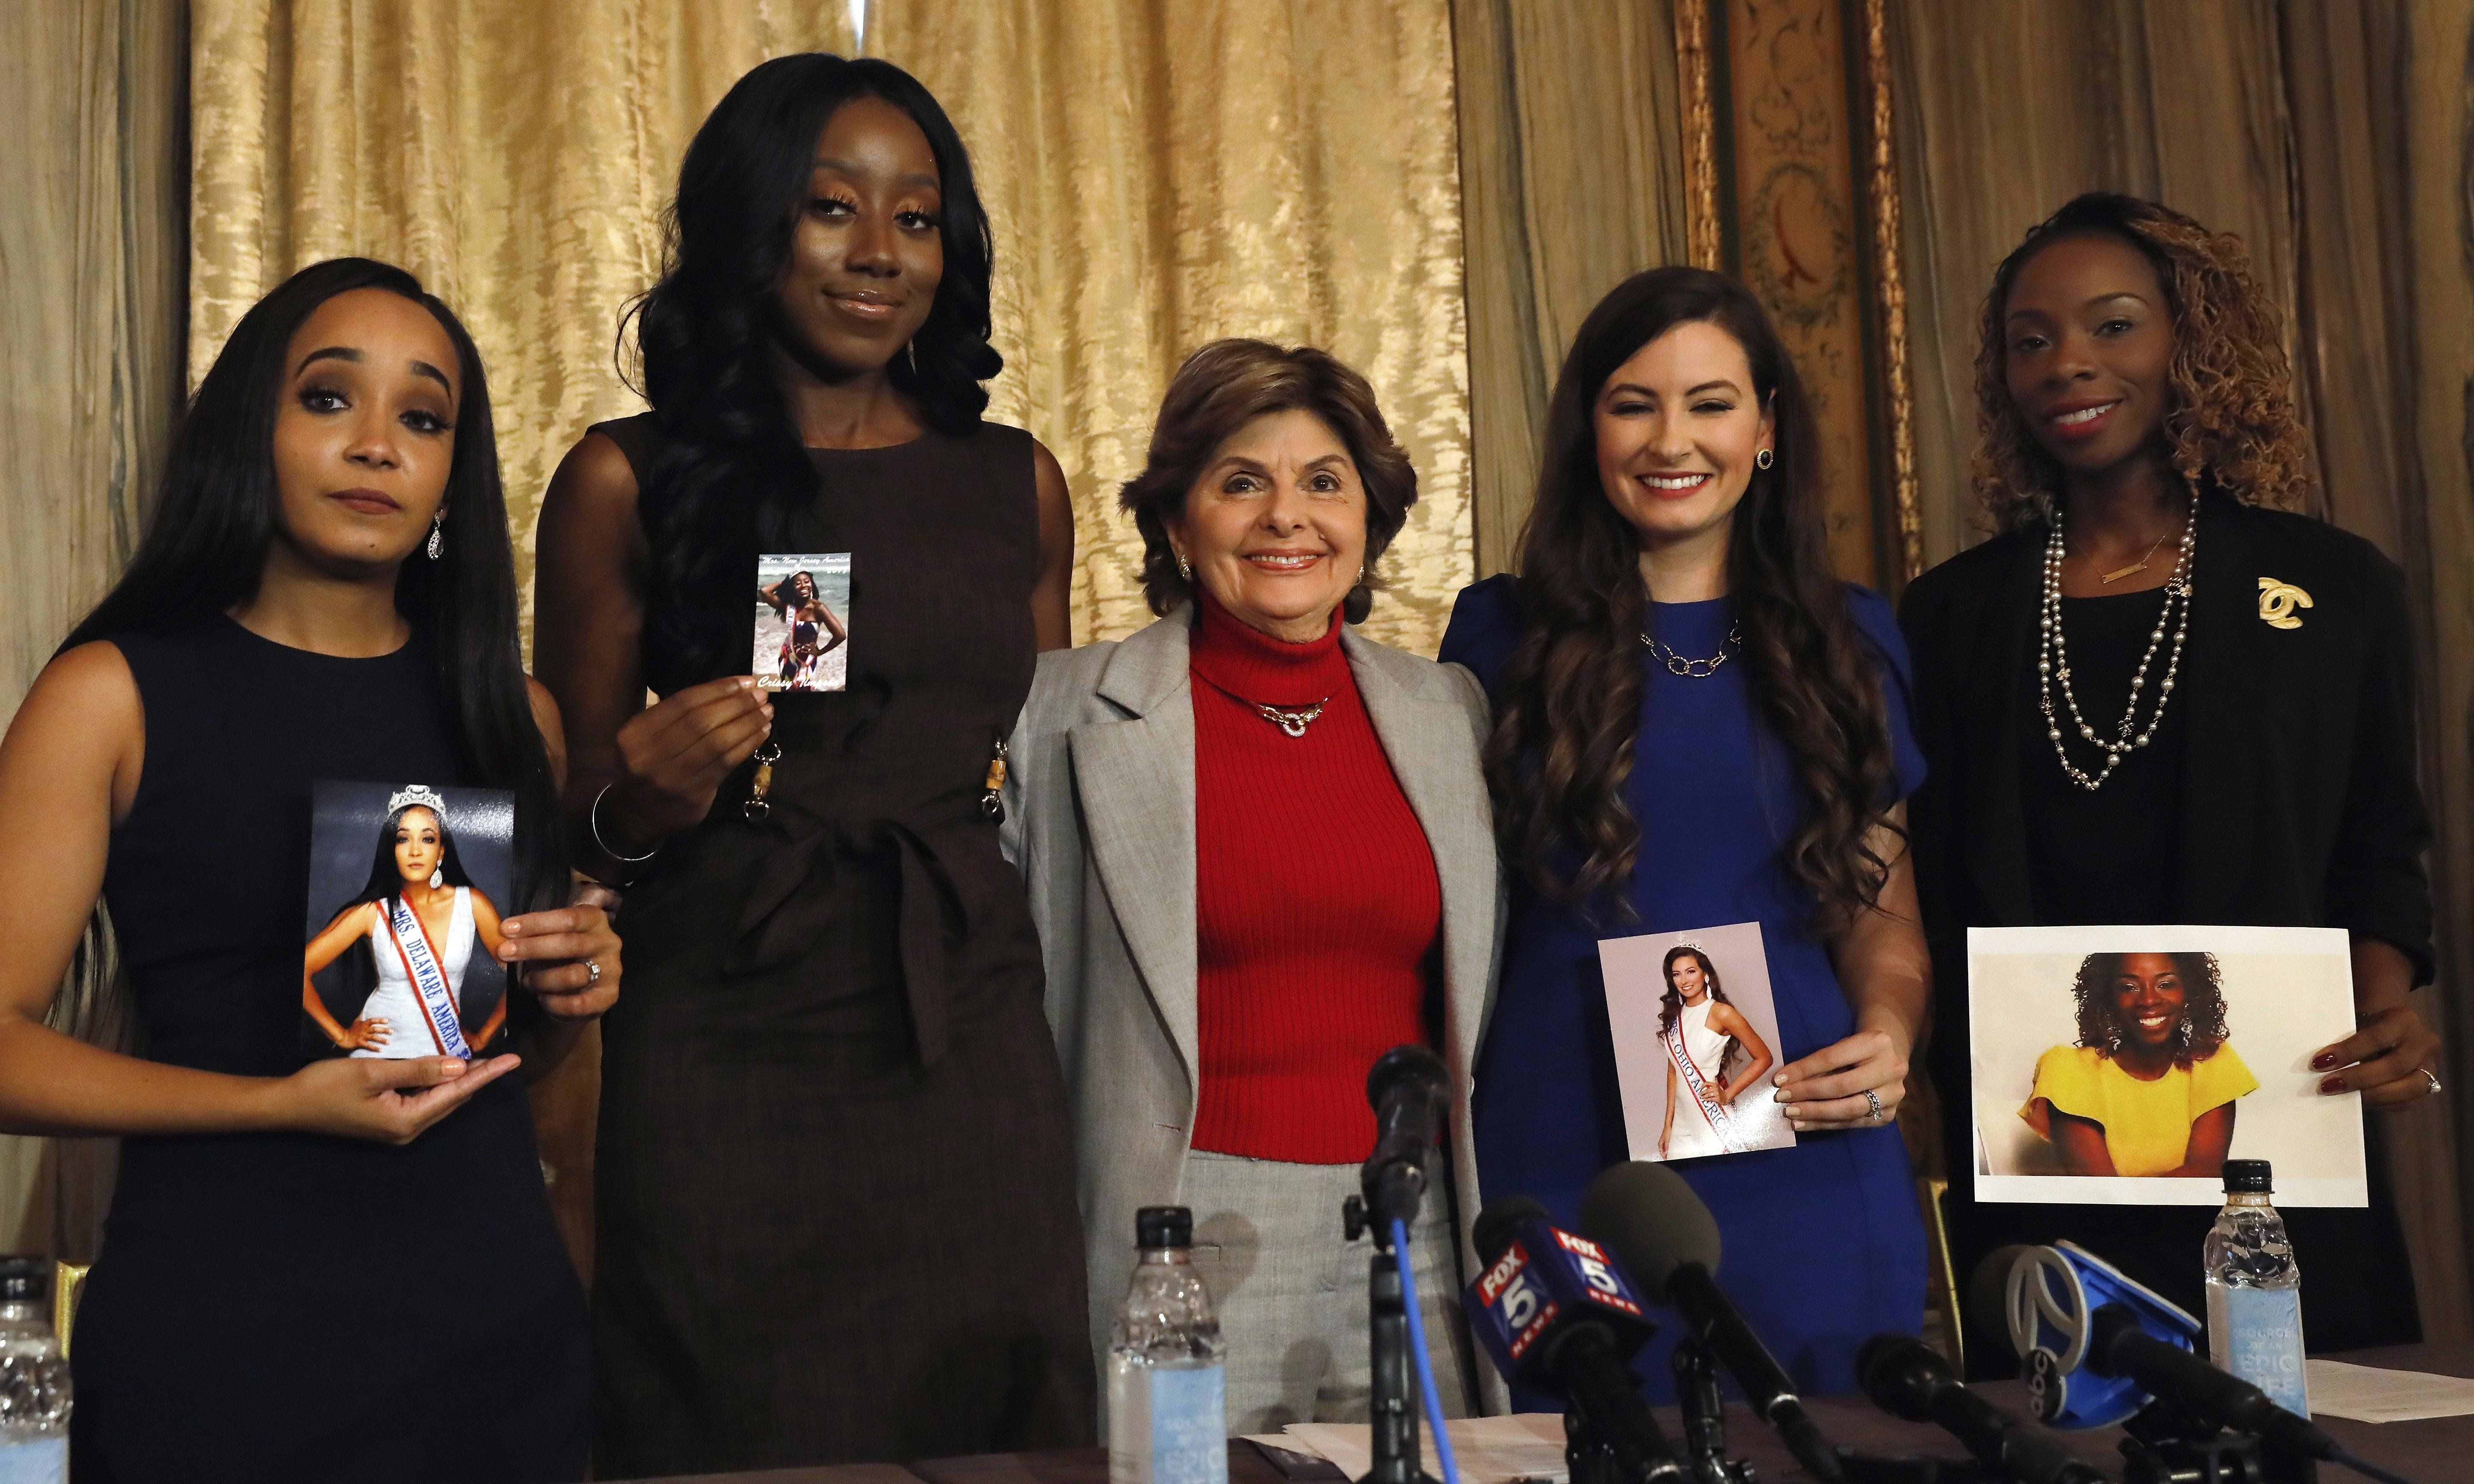 The four contestants in this year's Mrs. America pageant, from left, Kimberly Phillips, Crissy Timpson, Gloria Allred, Brandy Palacios, and Jeri Ward, have accused the pageant's director of making racially insensitive remarks.